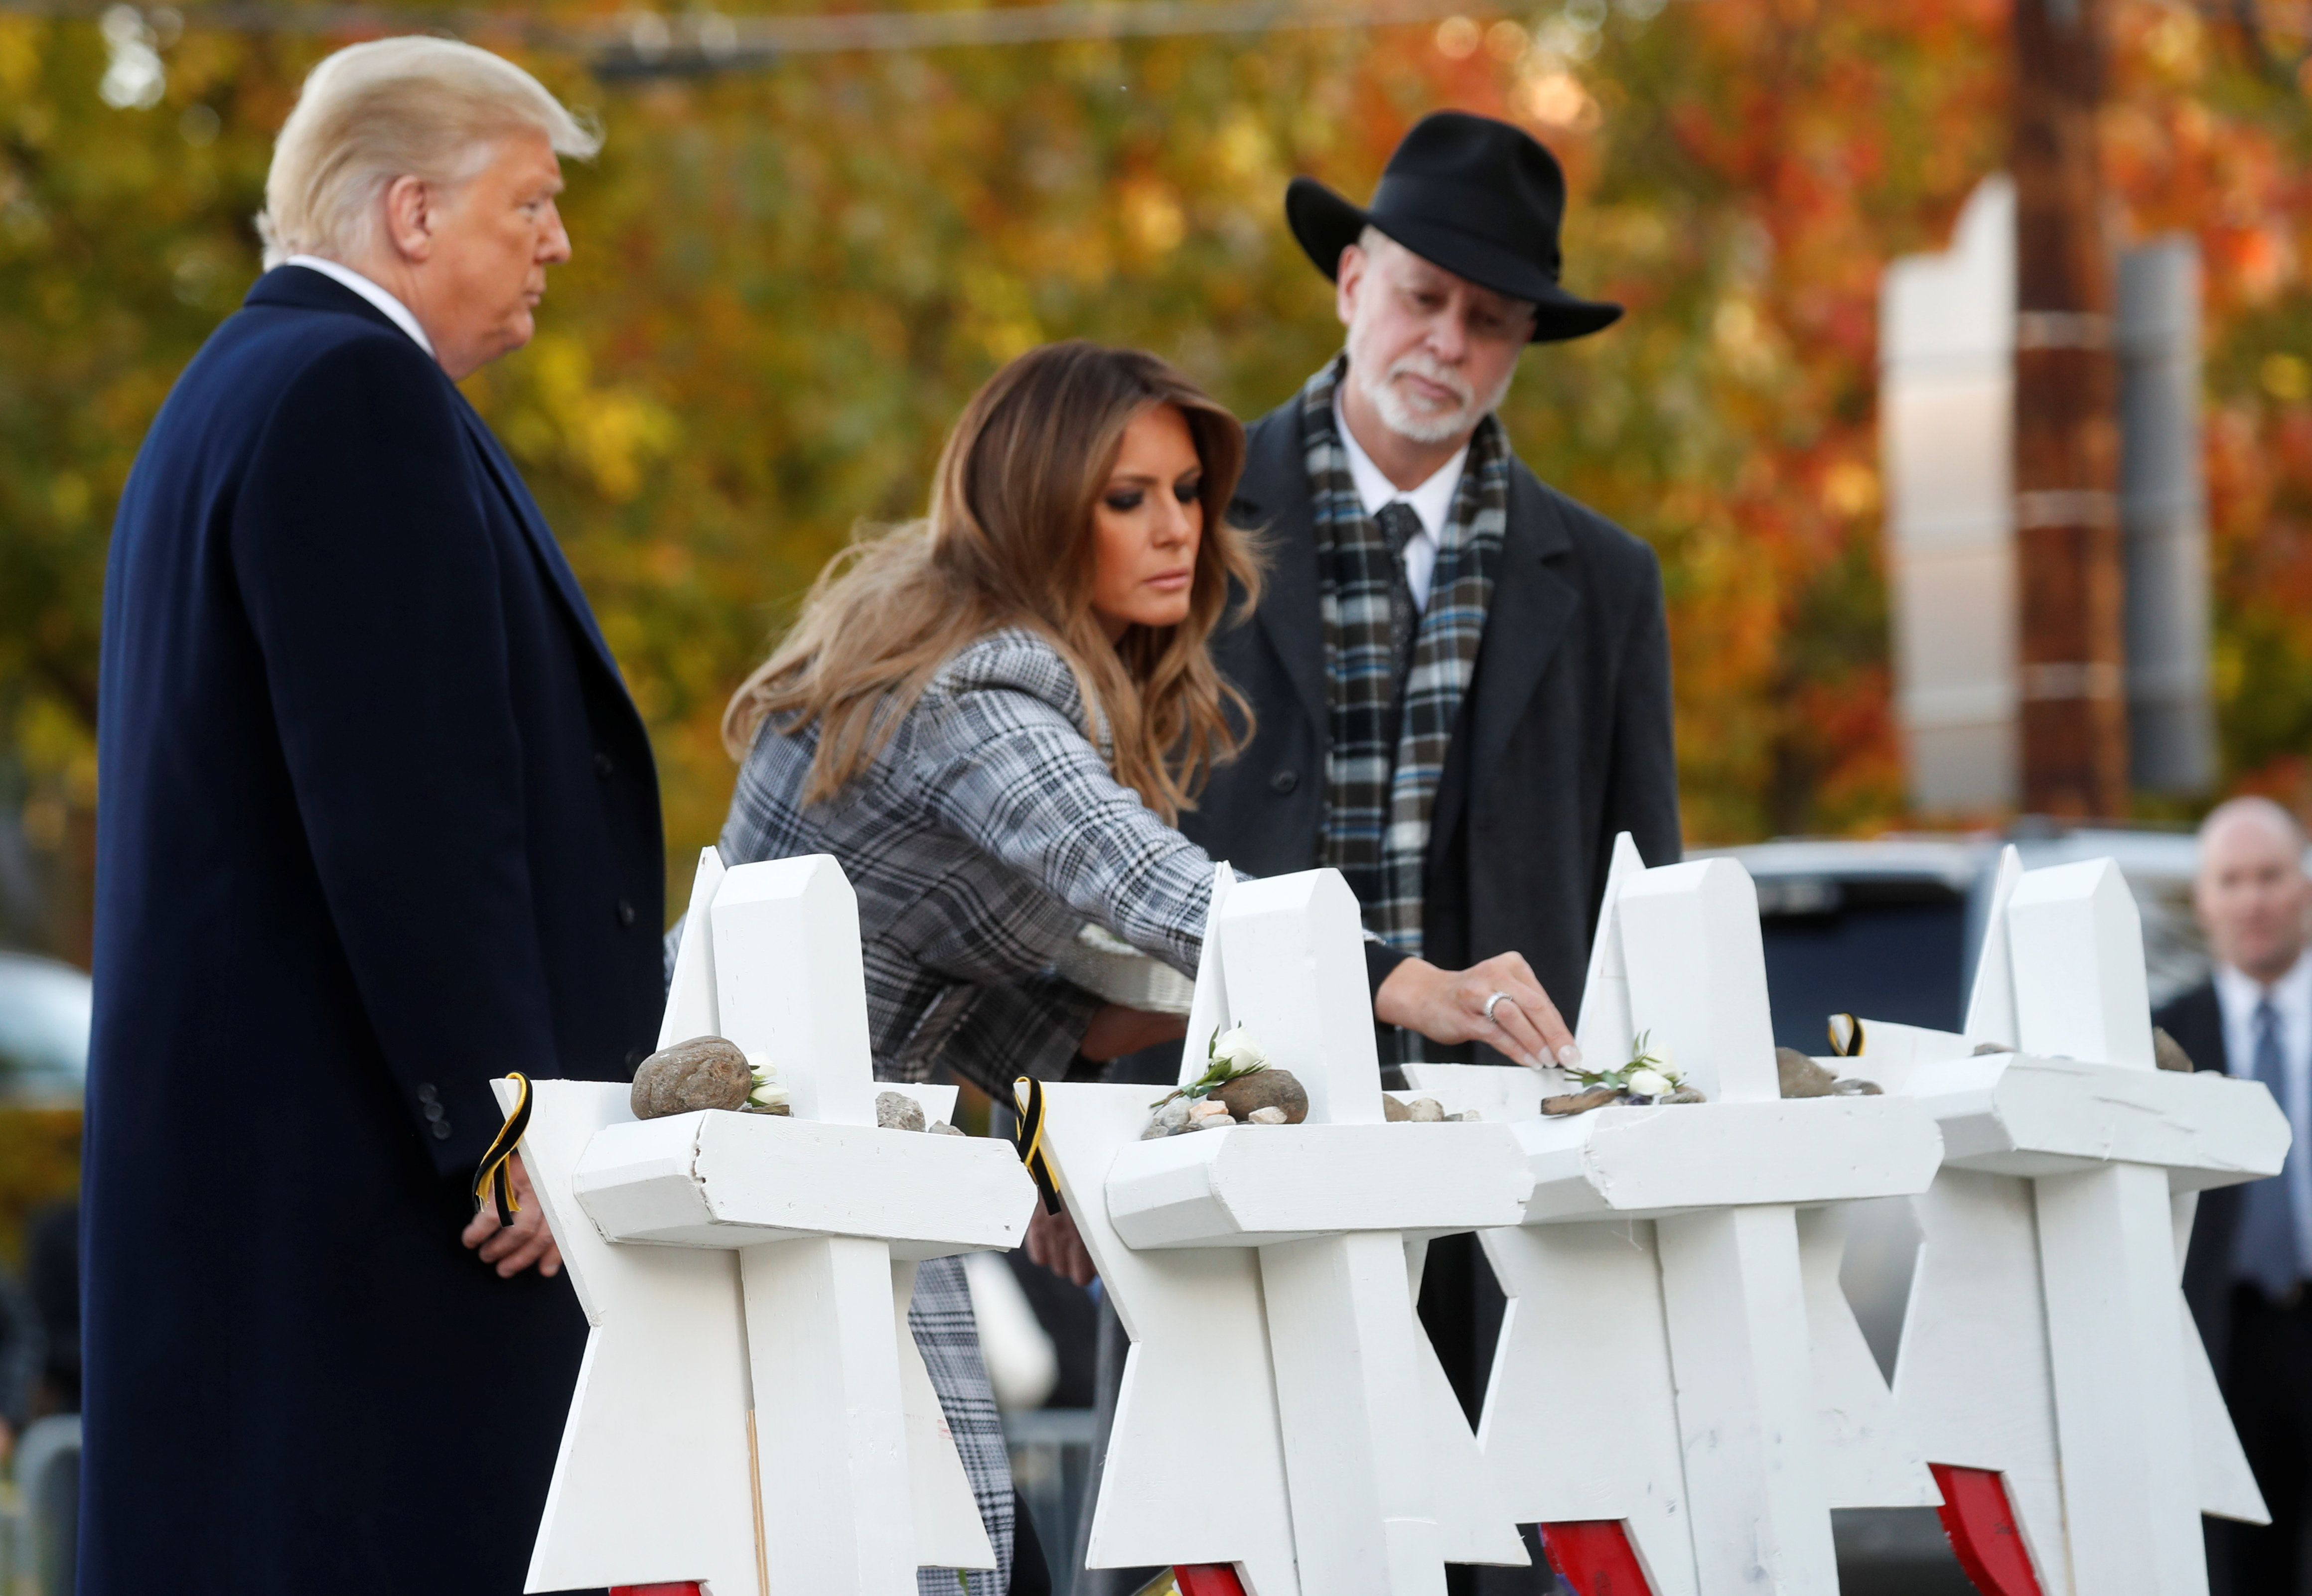 U.S. President Donald Trump and first lady Melania Trump place stones on a memorial to shooting victims as they stand with Tree of Life Synagogue Rabbi Jeffrey Myers outside the synagogue where a gunman killed eleven people and wounded six during a mass shooting in Pittsburgh, Pennsylvania, U.S., October 30, 2018. REUTERS/Kevin Lamarque